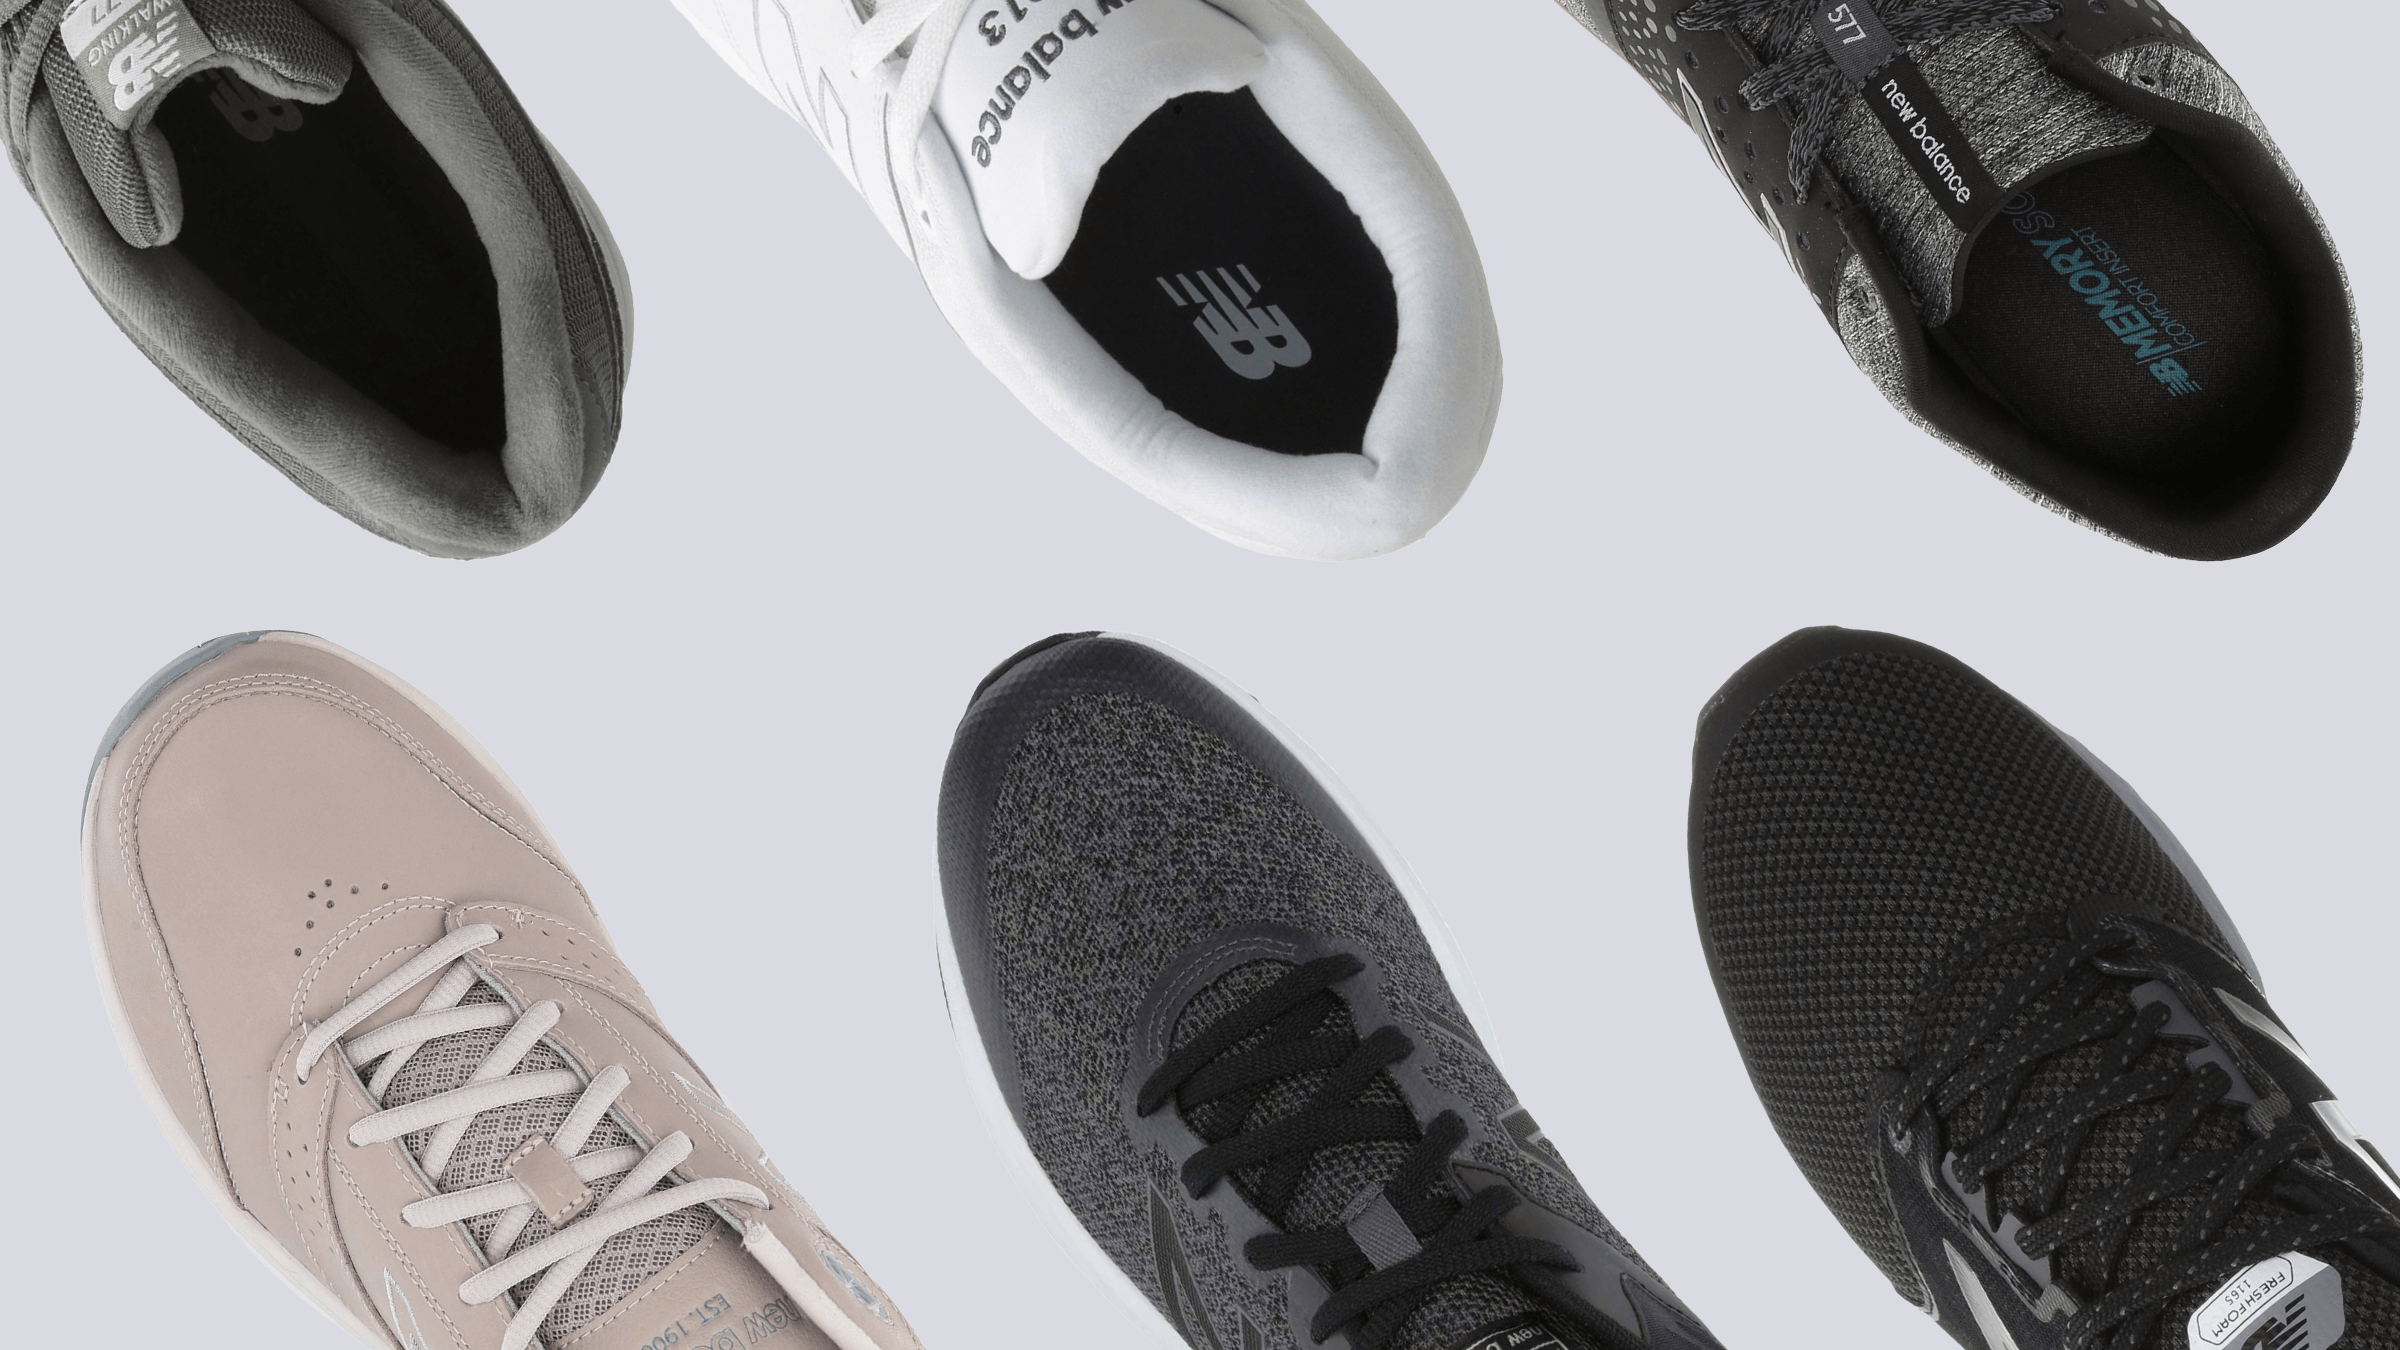 10 Best New Balance Walking Shoes in 2021